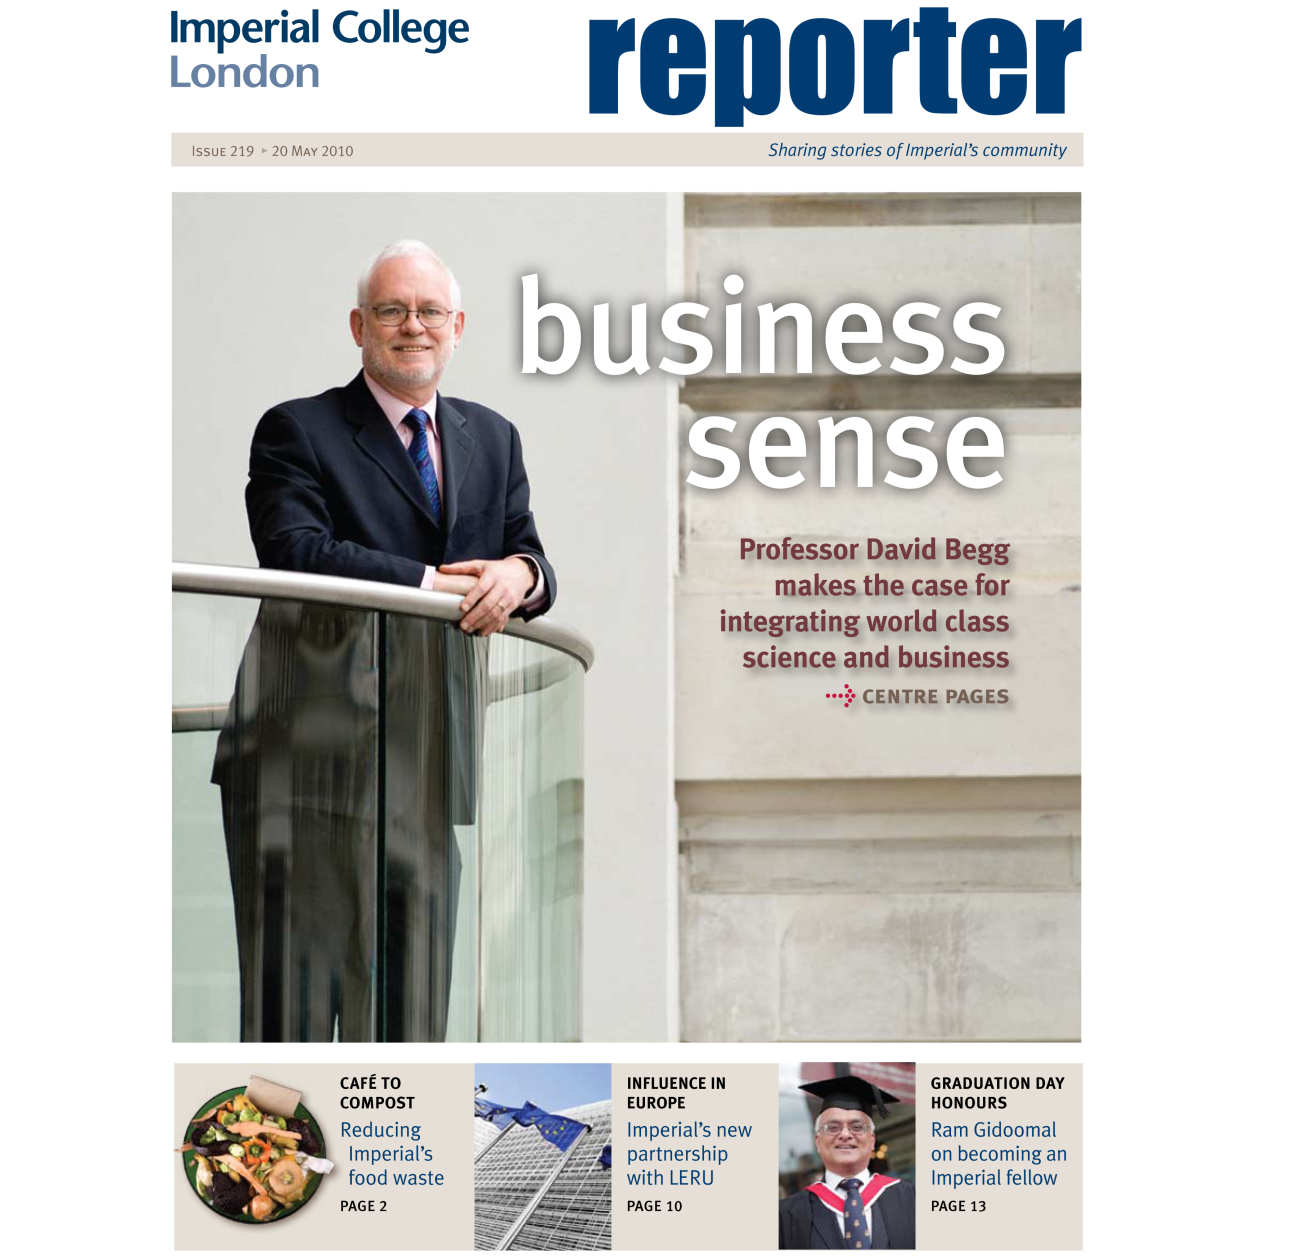 Issue 219 - 20 May 2010